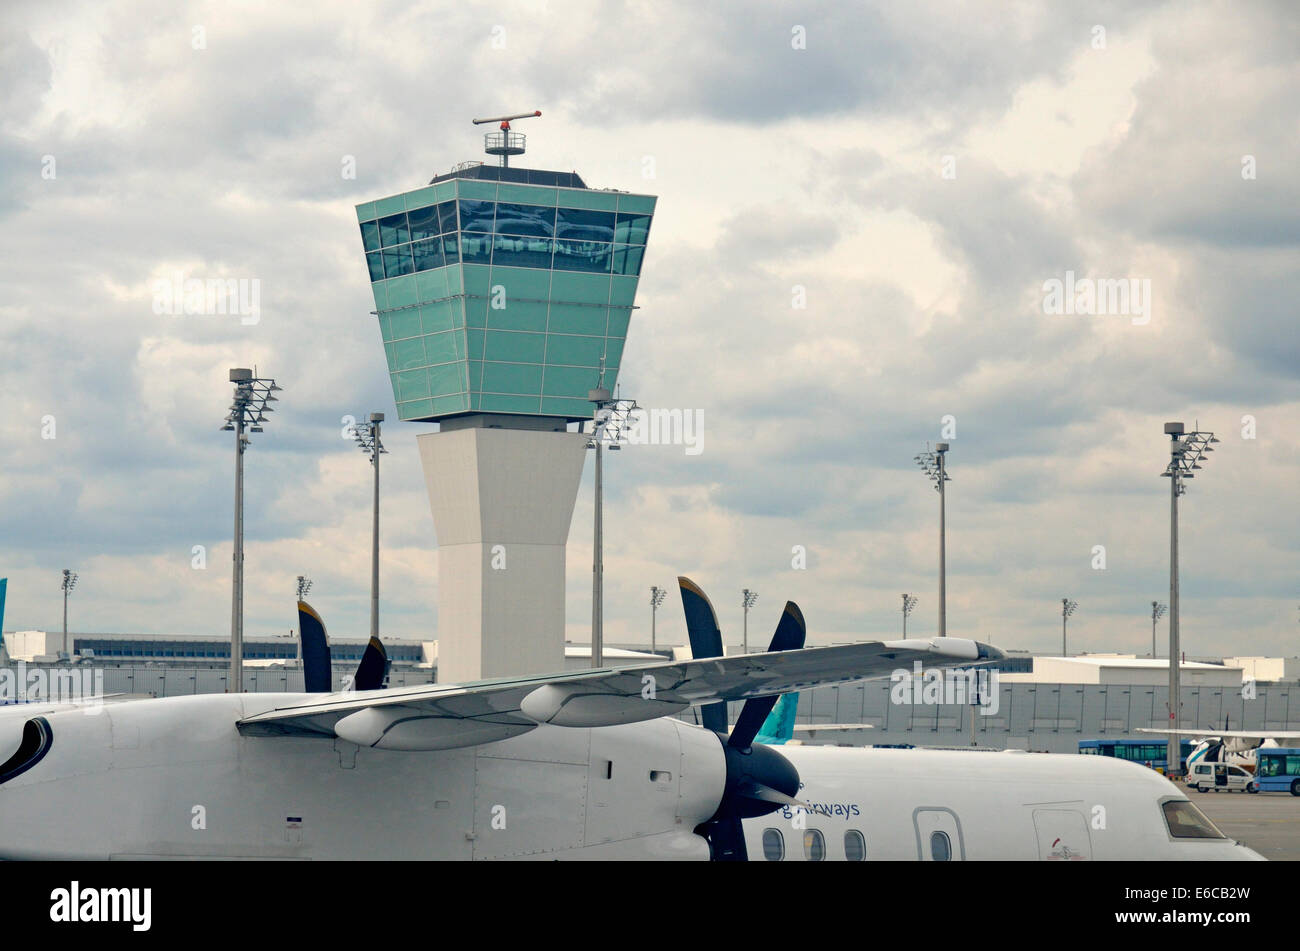 Stationary airplane on tarmac by Air Traffic Control Tower, Munich, Germany - Stock Image